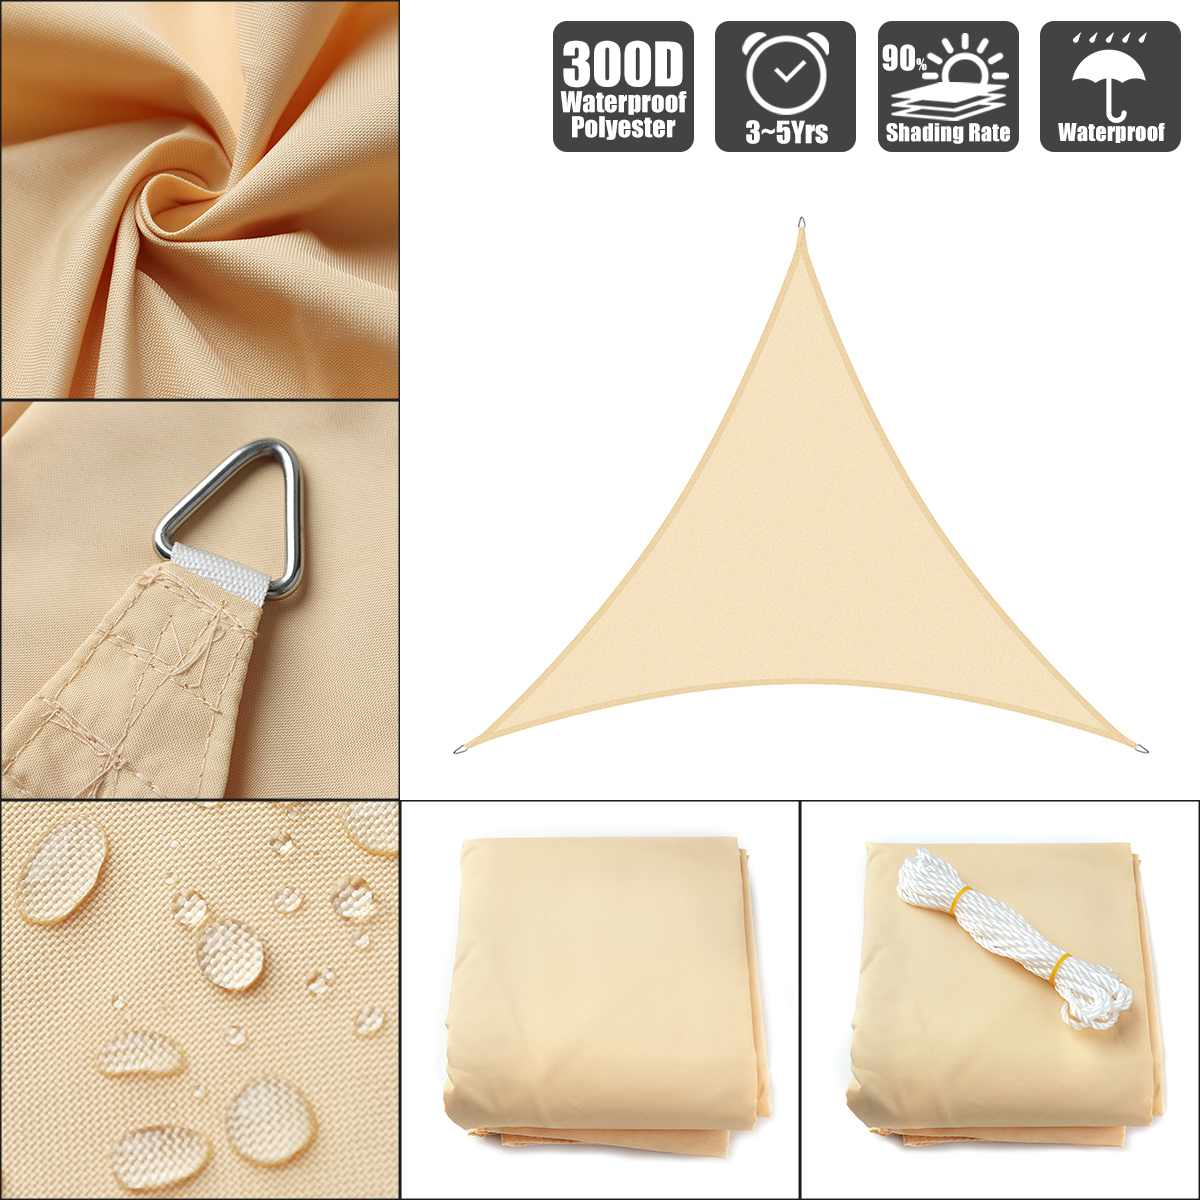 3.6x3.6x3.6 4x4x4 5x5x5  Beige 300D 160GSM Polyester Oxford Fabric Shade Sail Sun Outdoor Triangle|Shade Sails & Nets| |  - title=